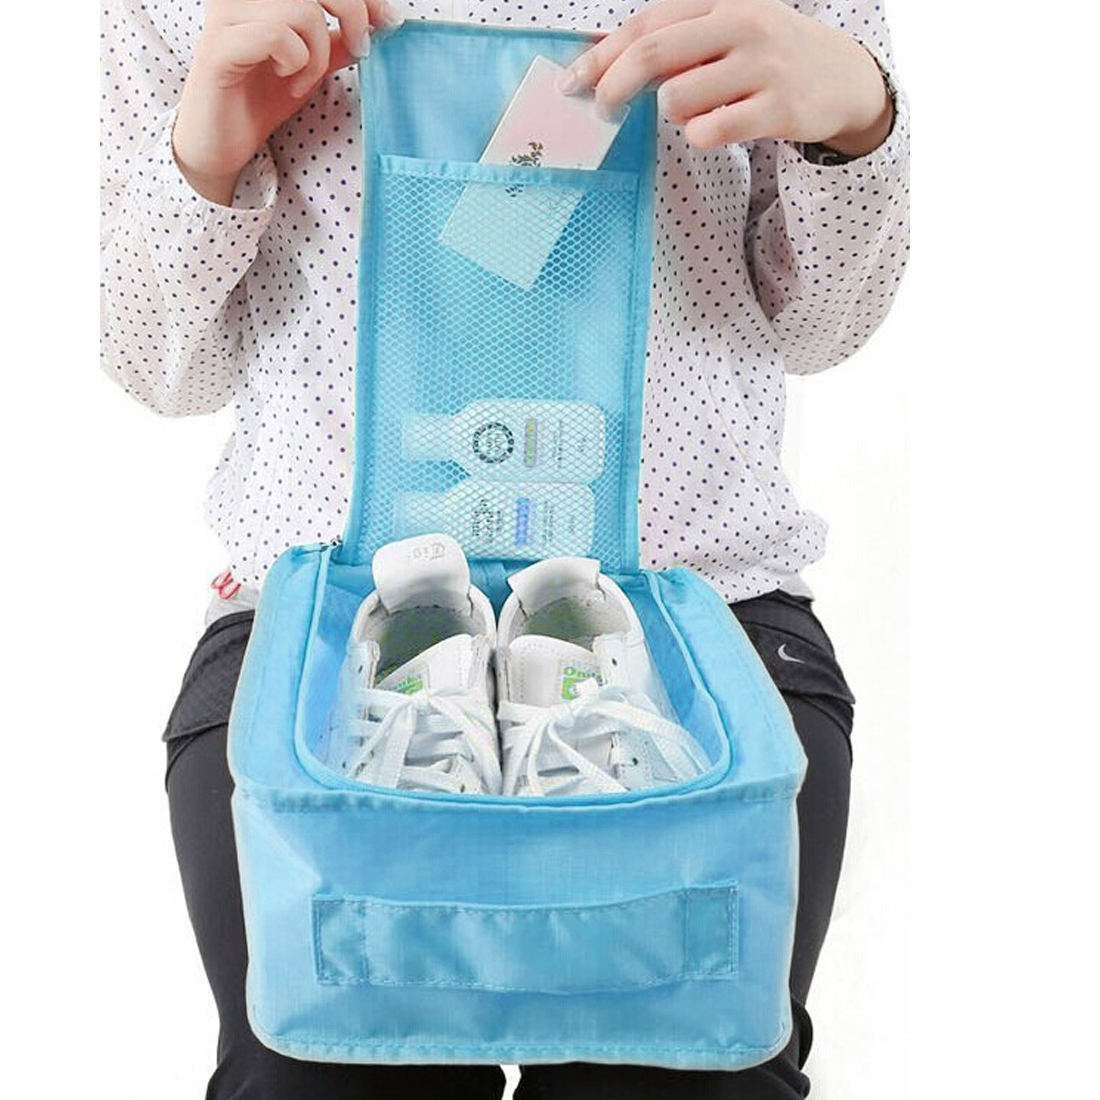 Unique Bargains Water Resistant Shoes Storage Folding Pouch Bag Case Organizer Keeper - image 5 de 6